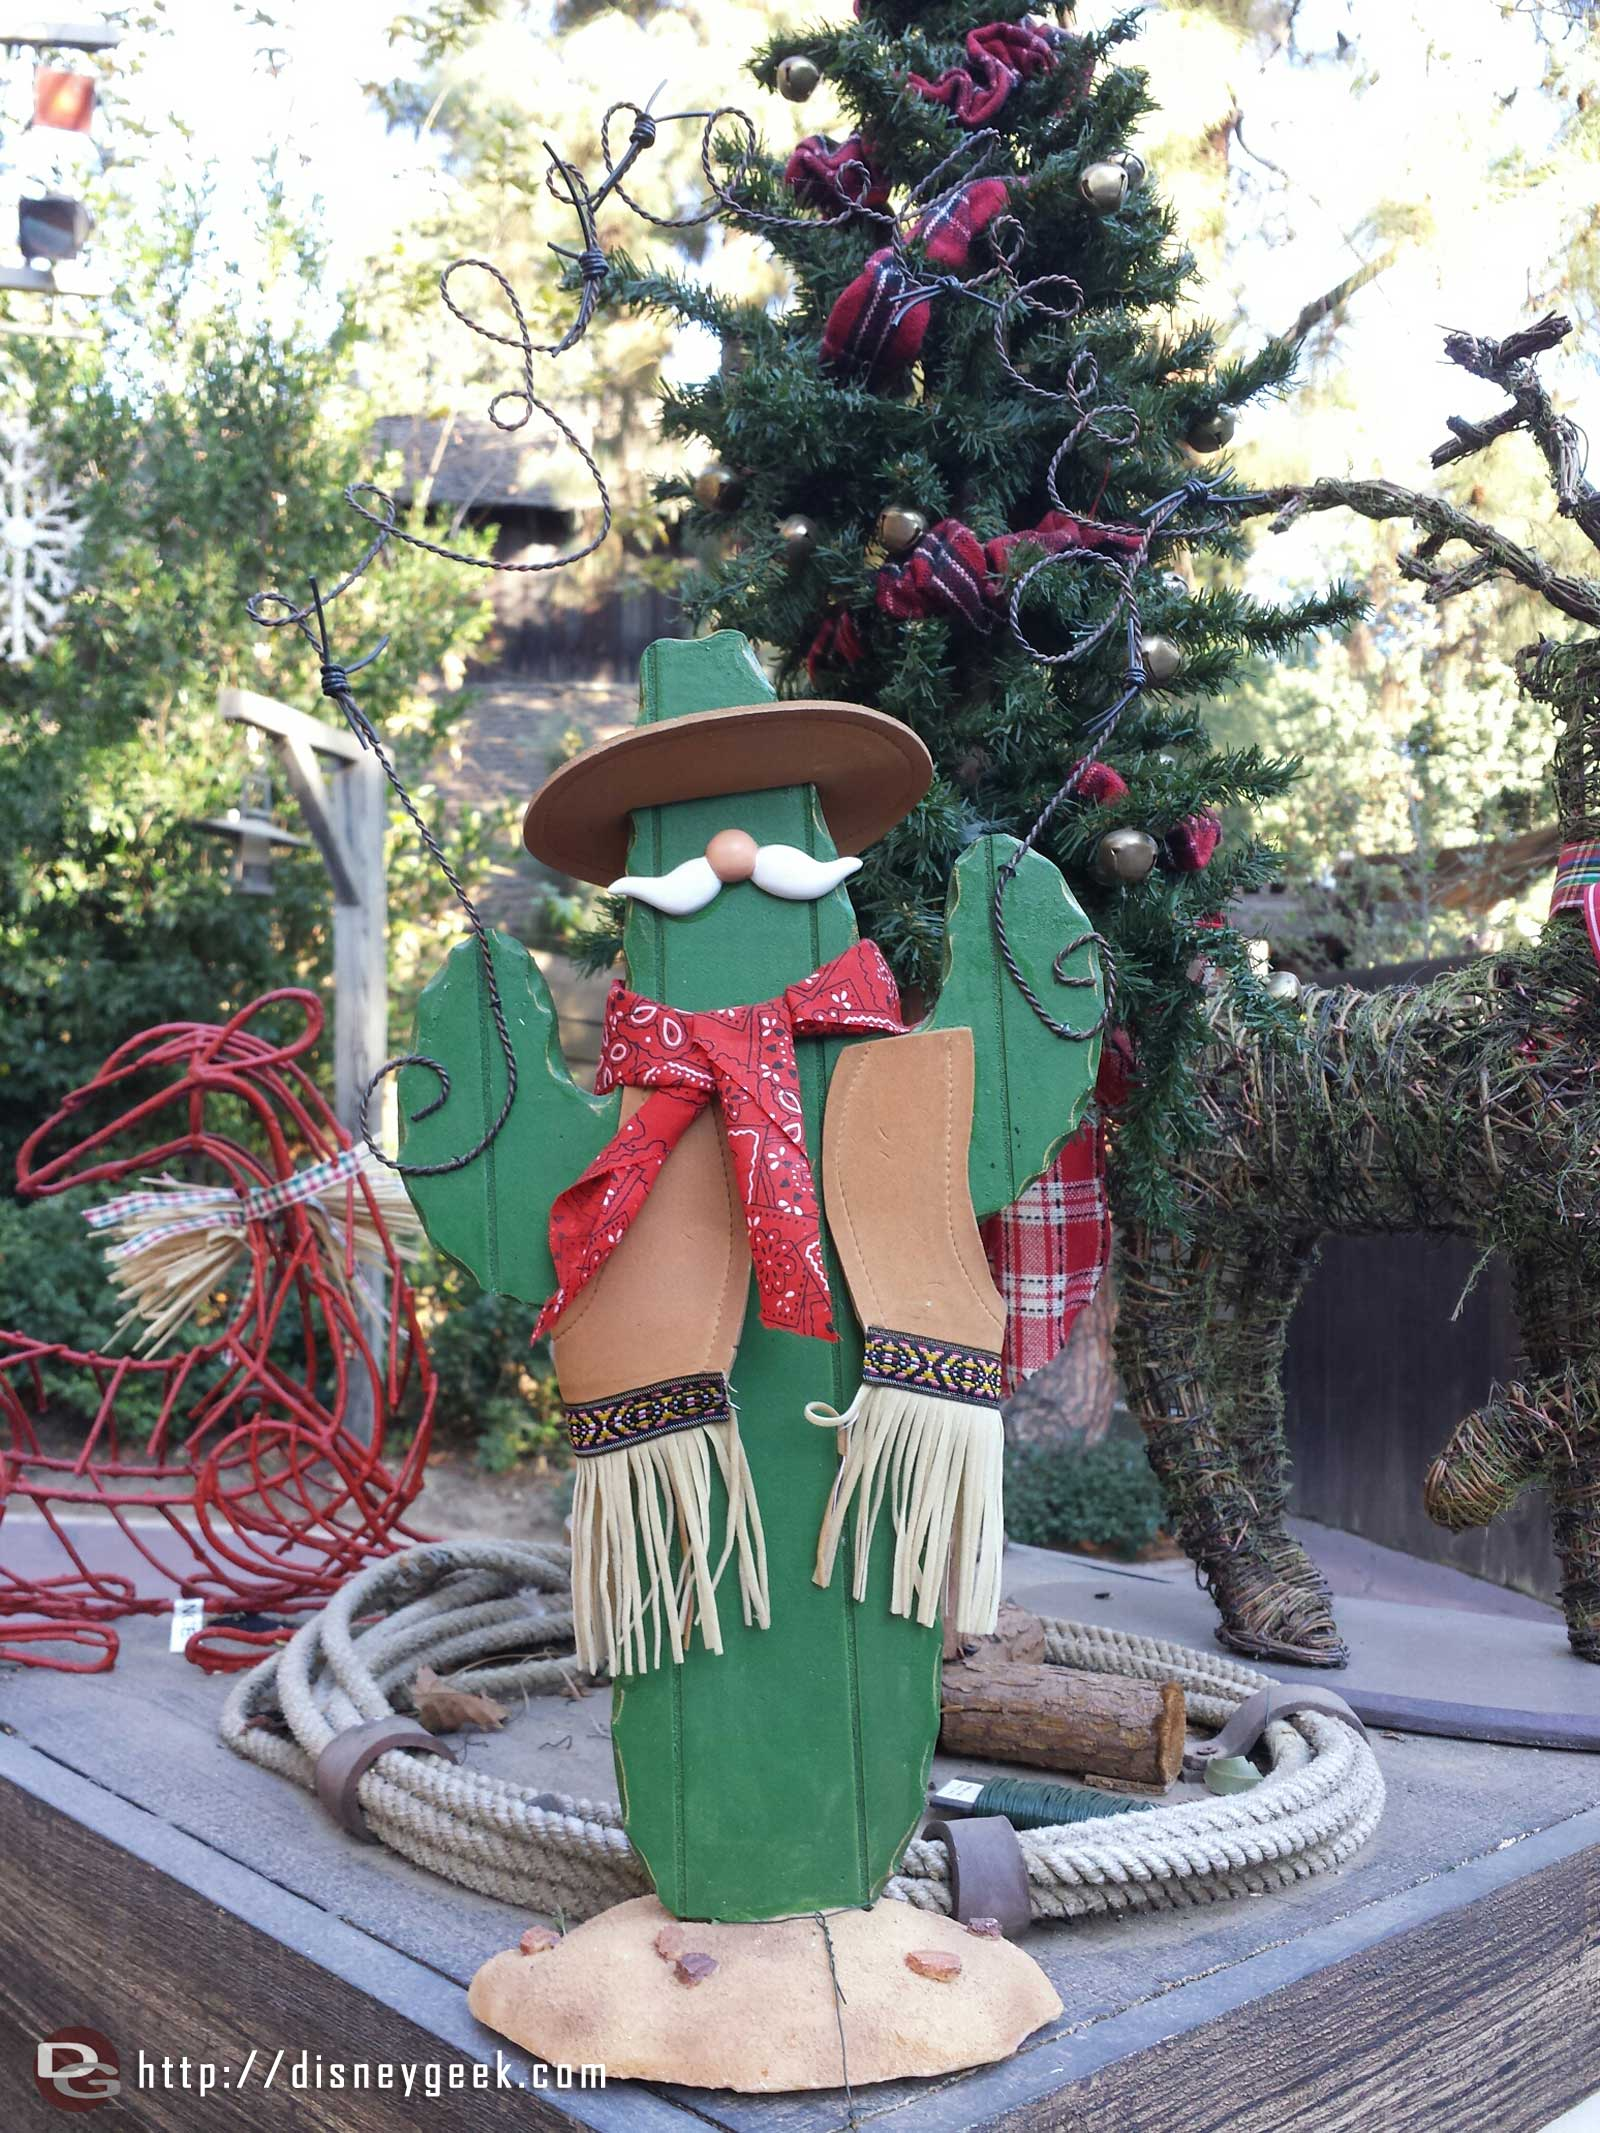 A cactus greets you at the Jingle Jangle Jamboree at the Big Thunder Ranch